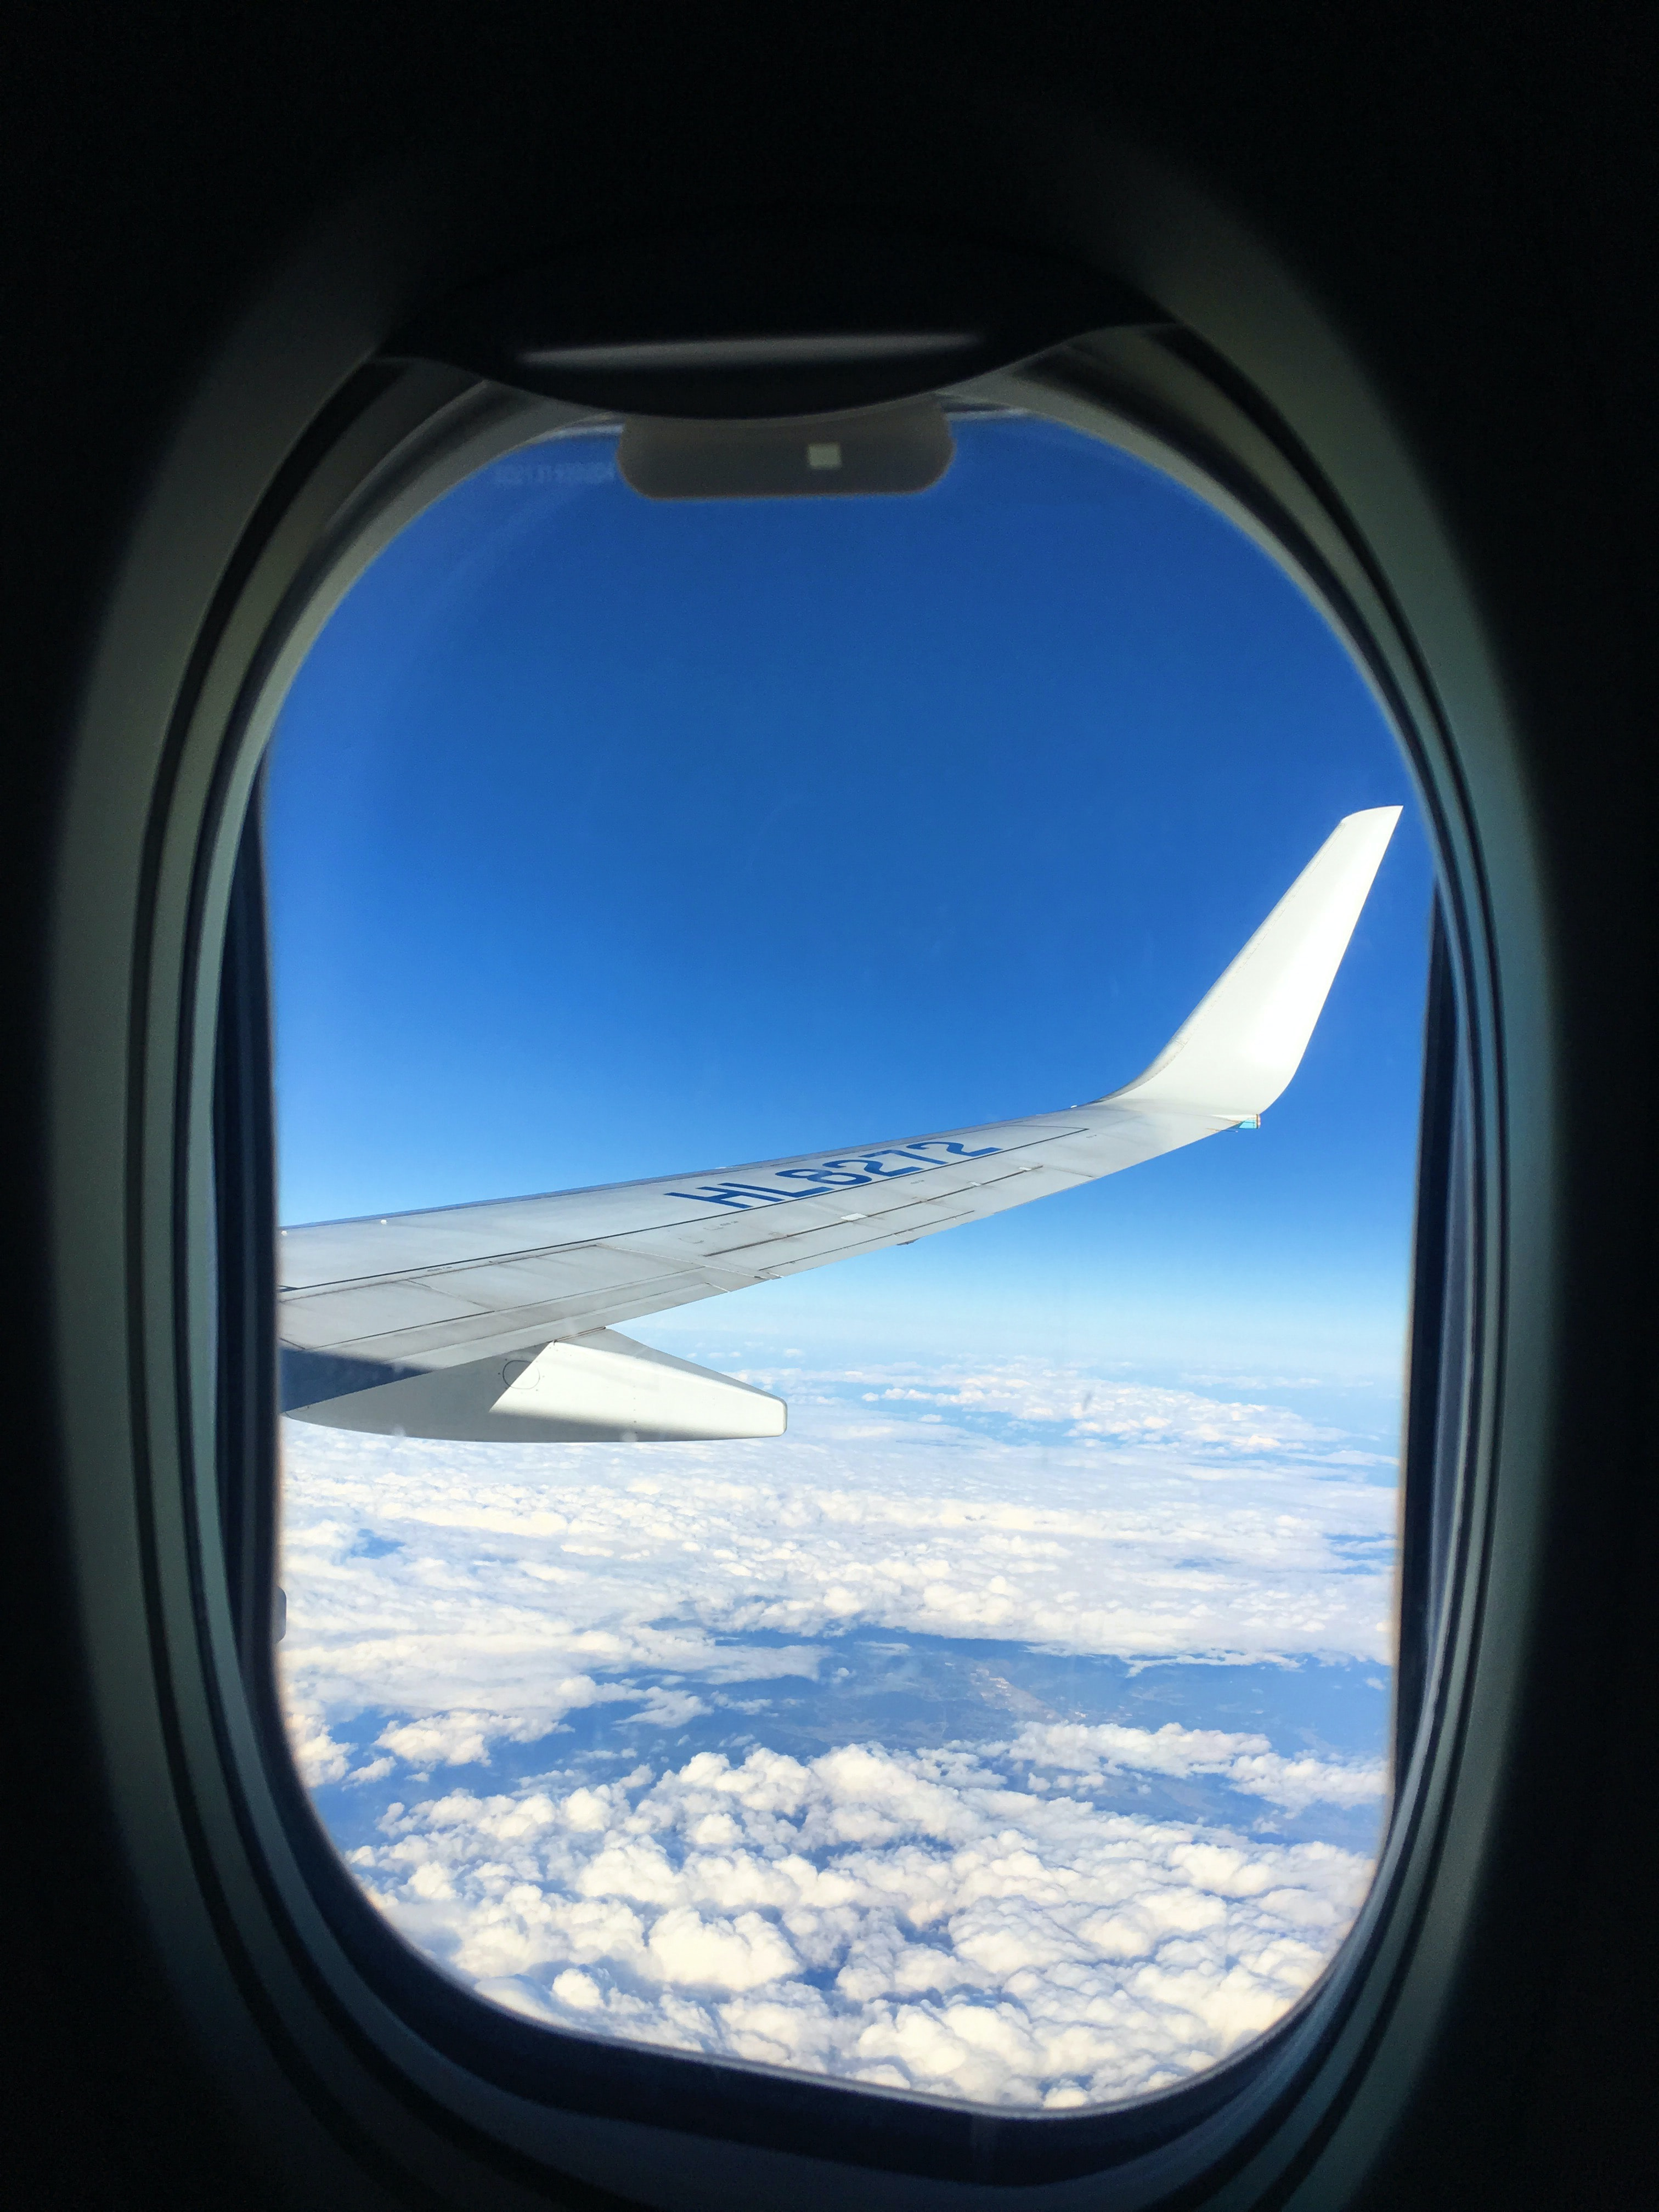 plane window showing airliner right wing